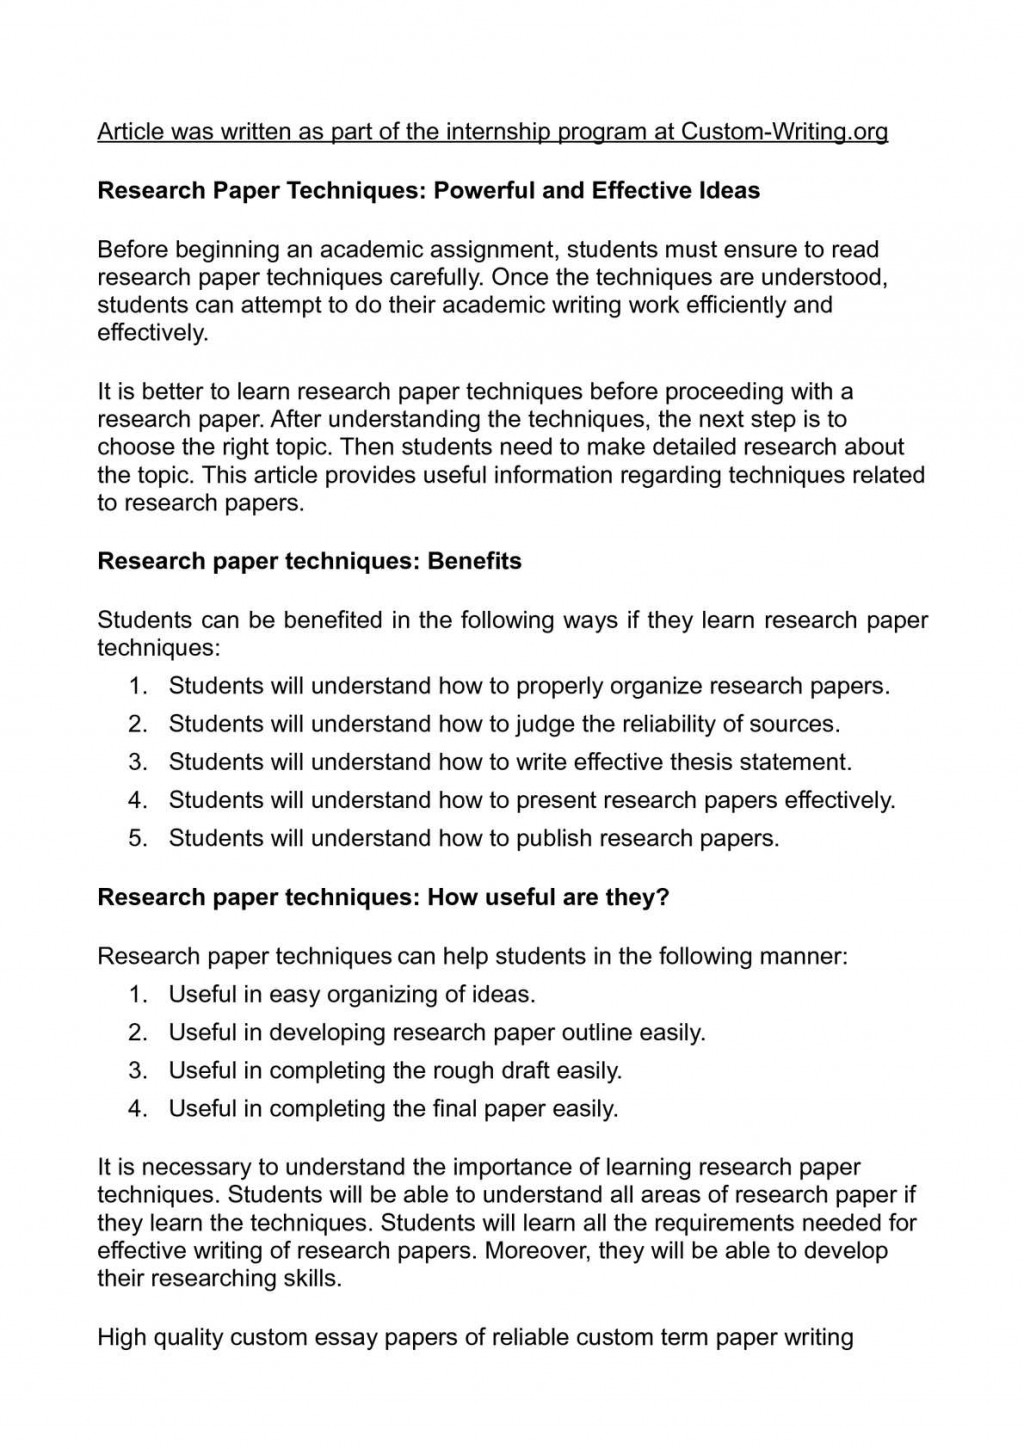 003 Ideas For Research Paper Fascinating Papers In Computer Science Middle School Topic High Large